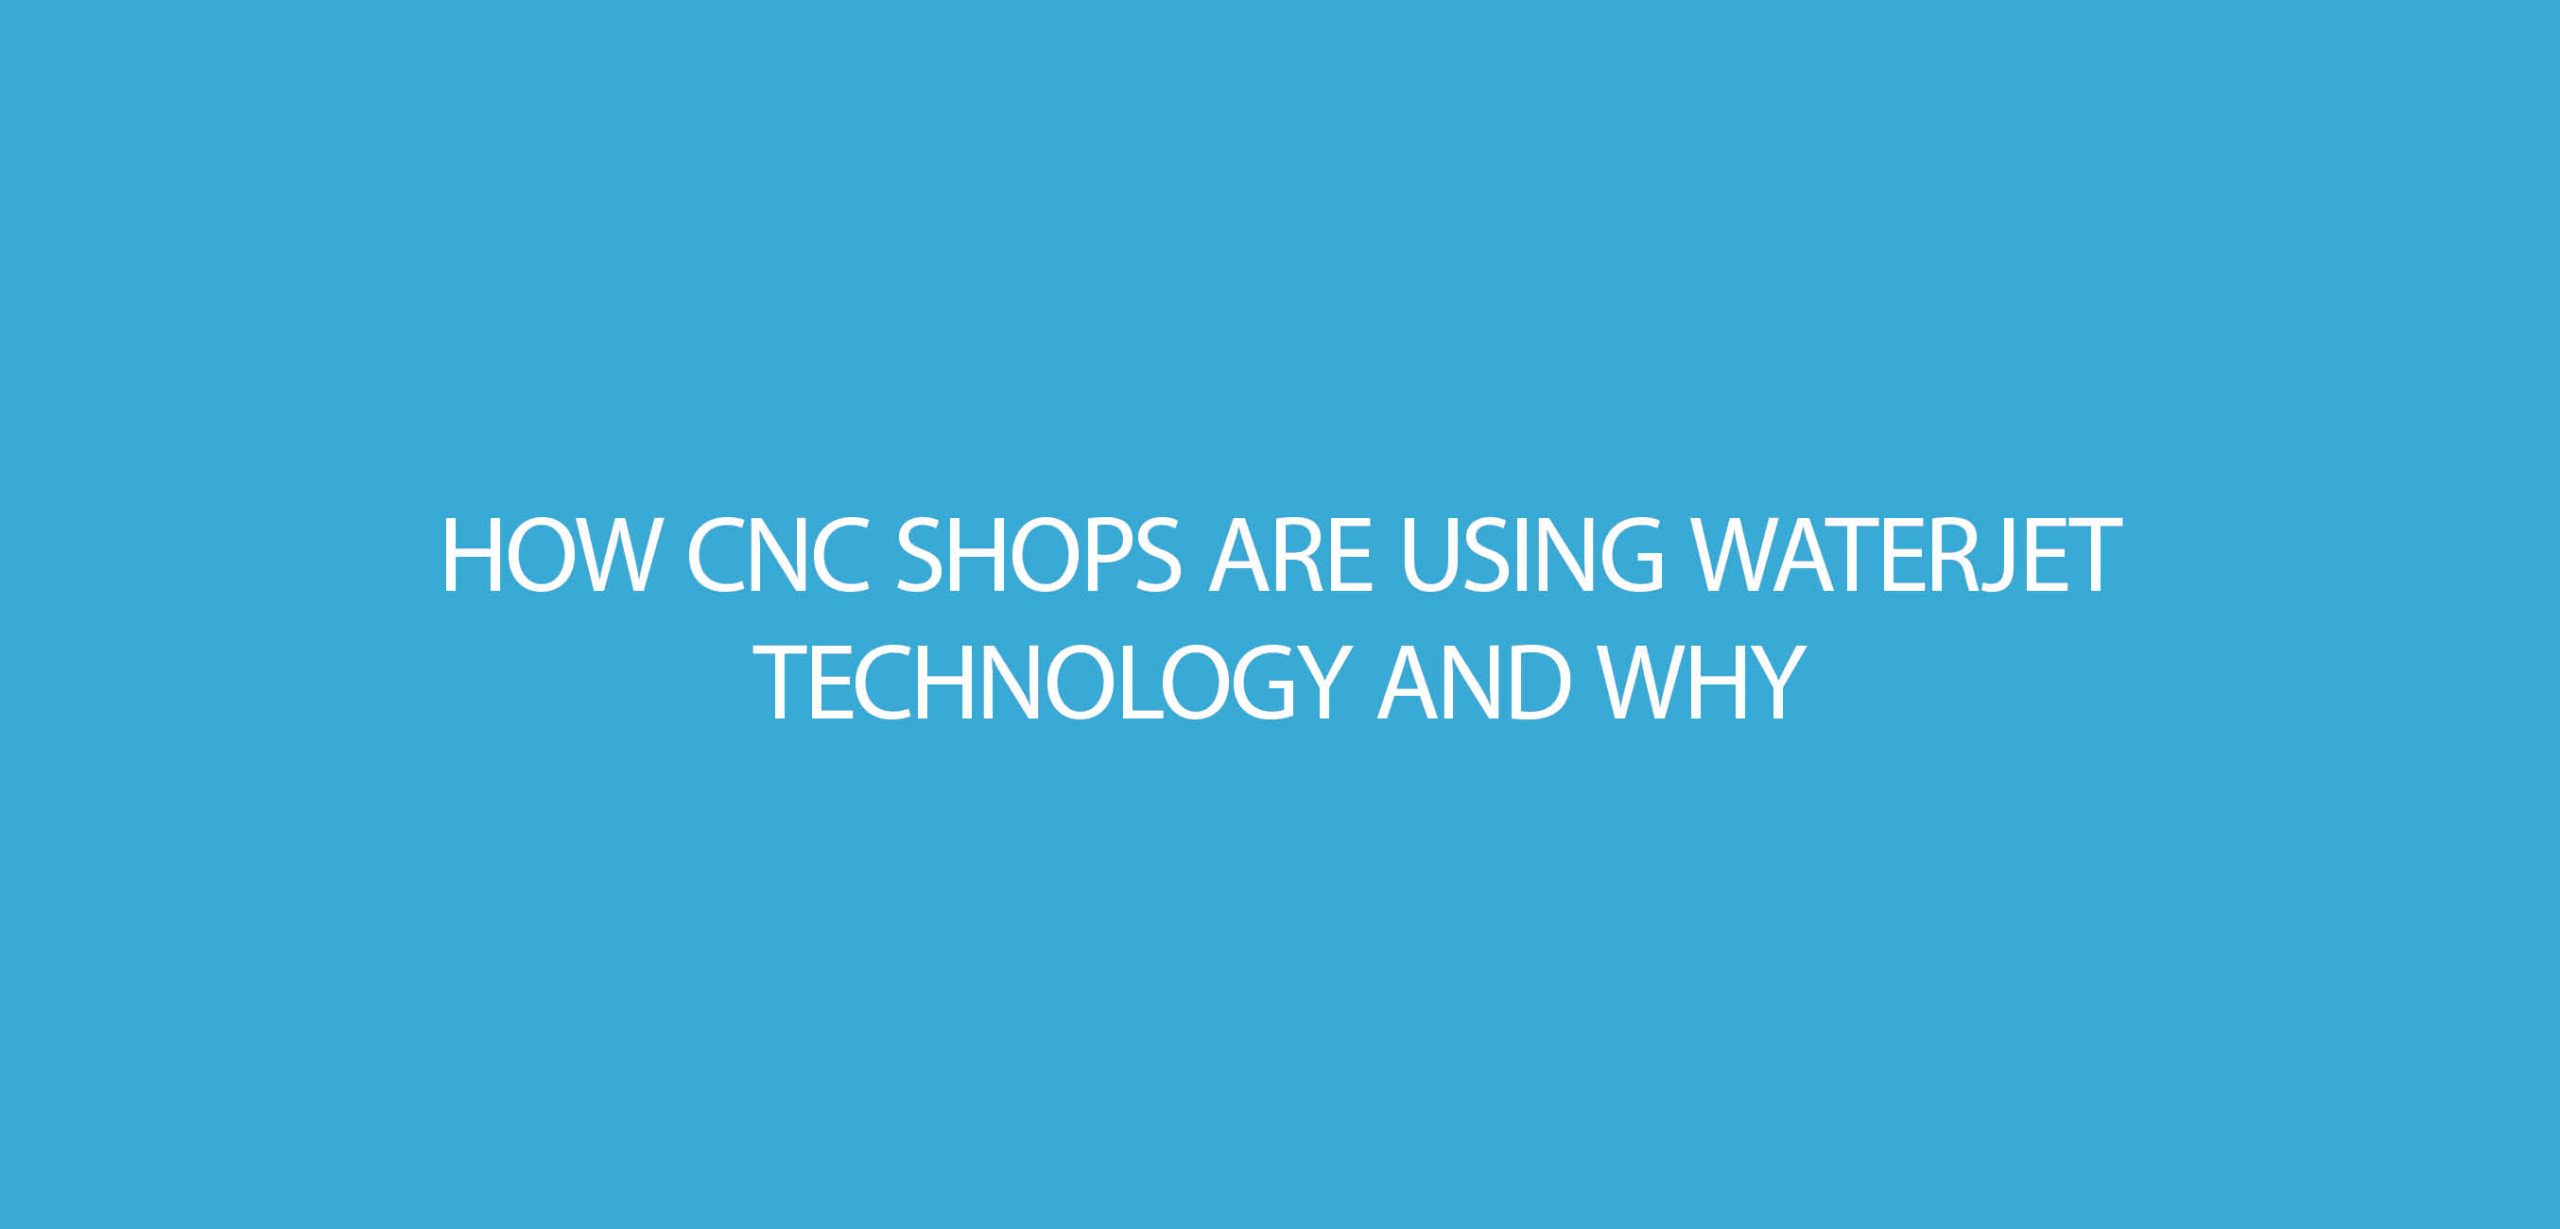 How CNC Shops are using Waterjet Technology and Why